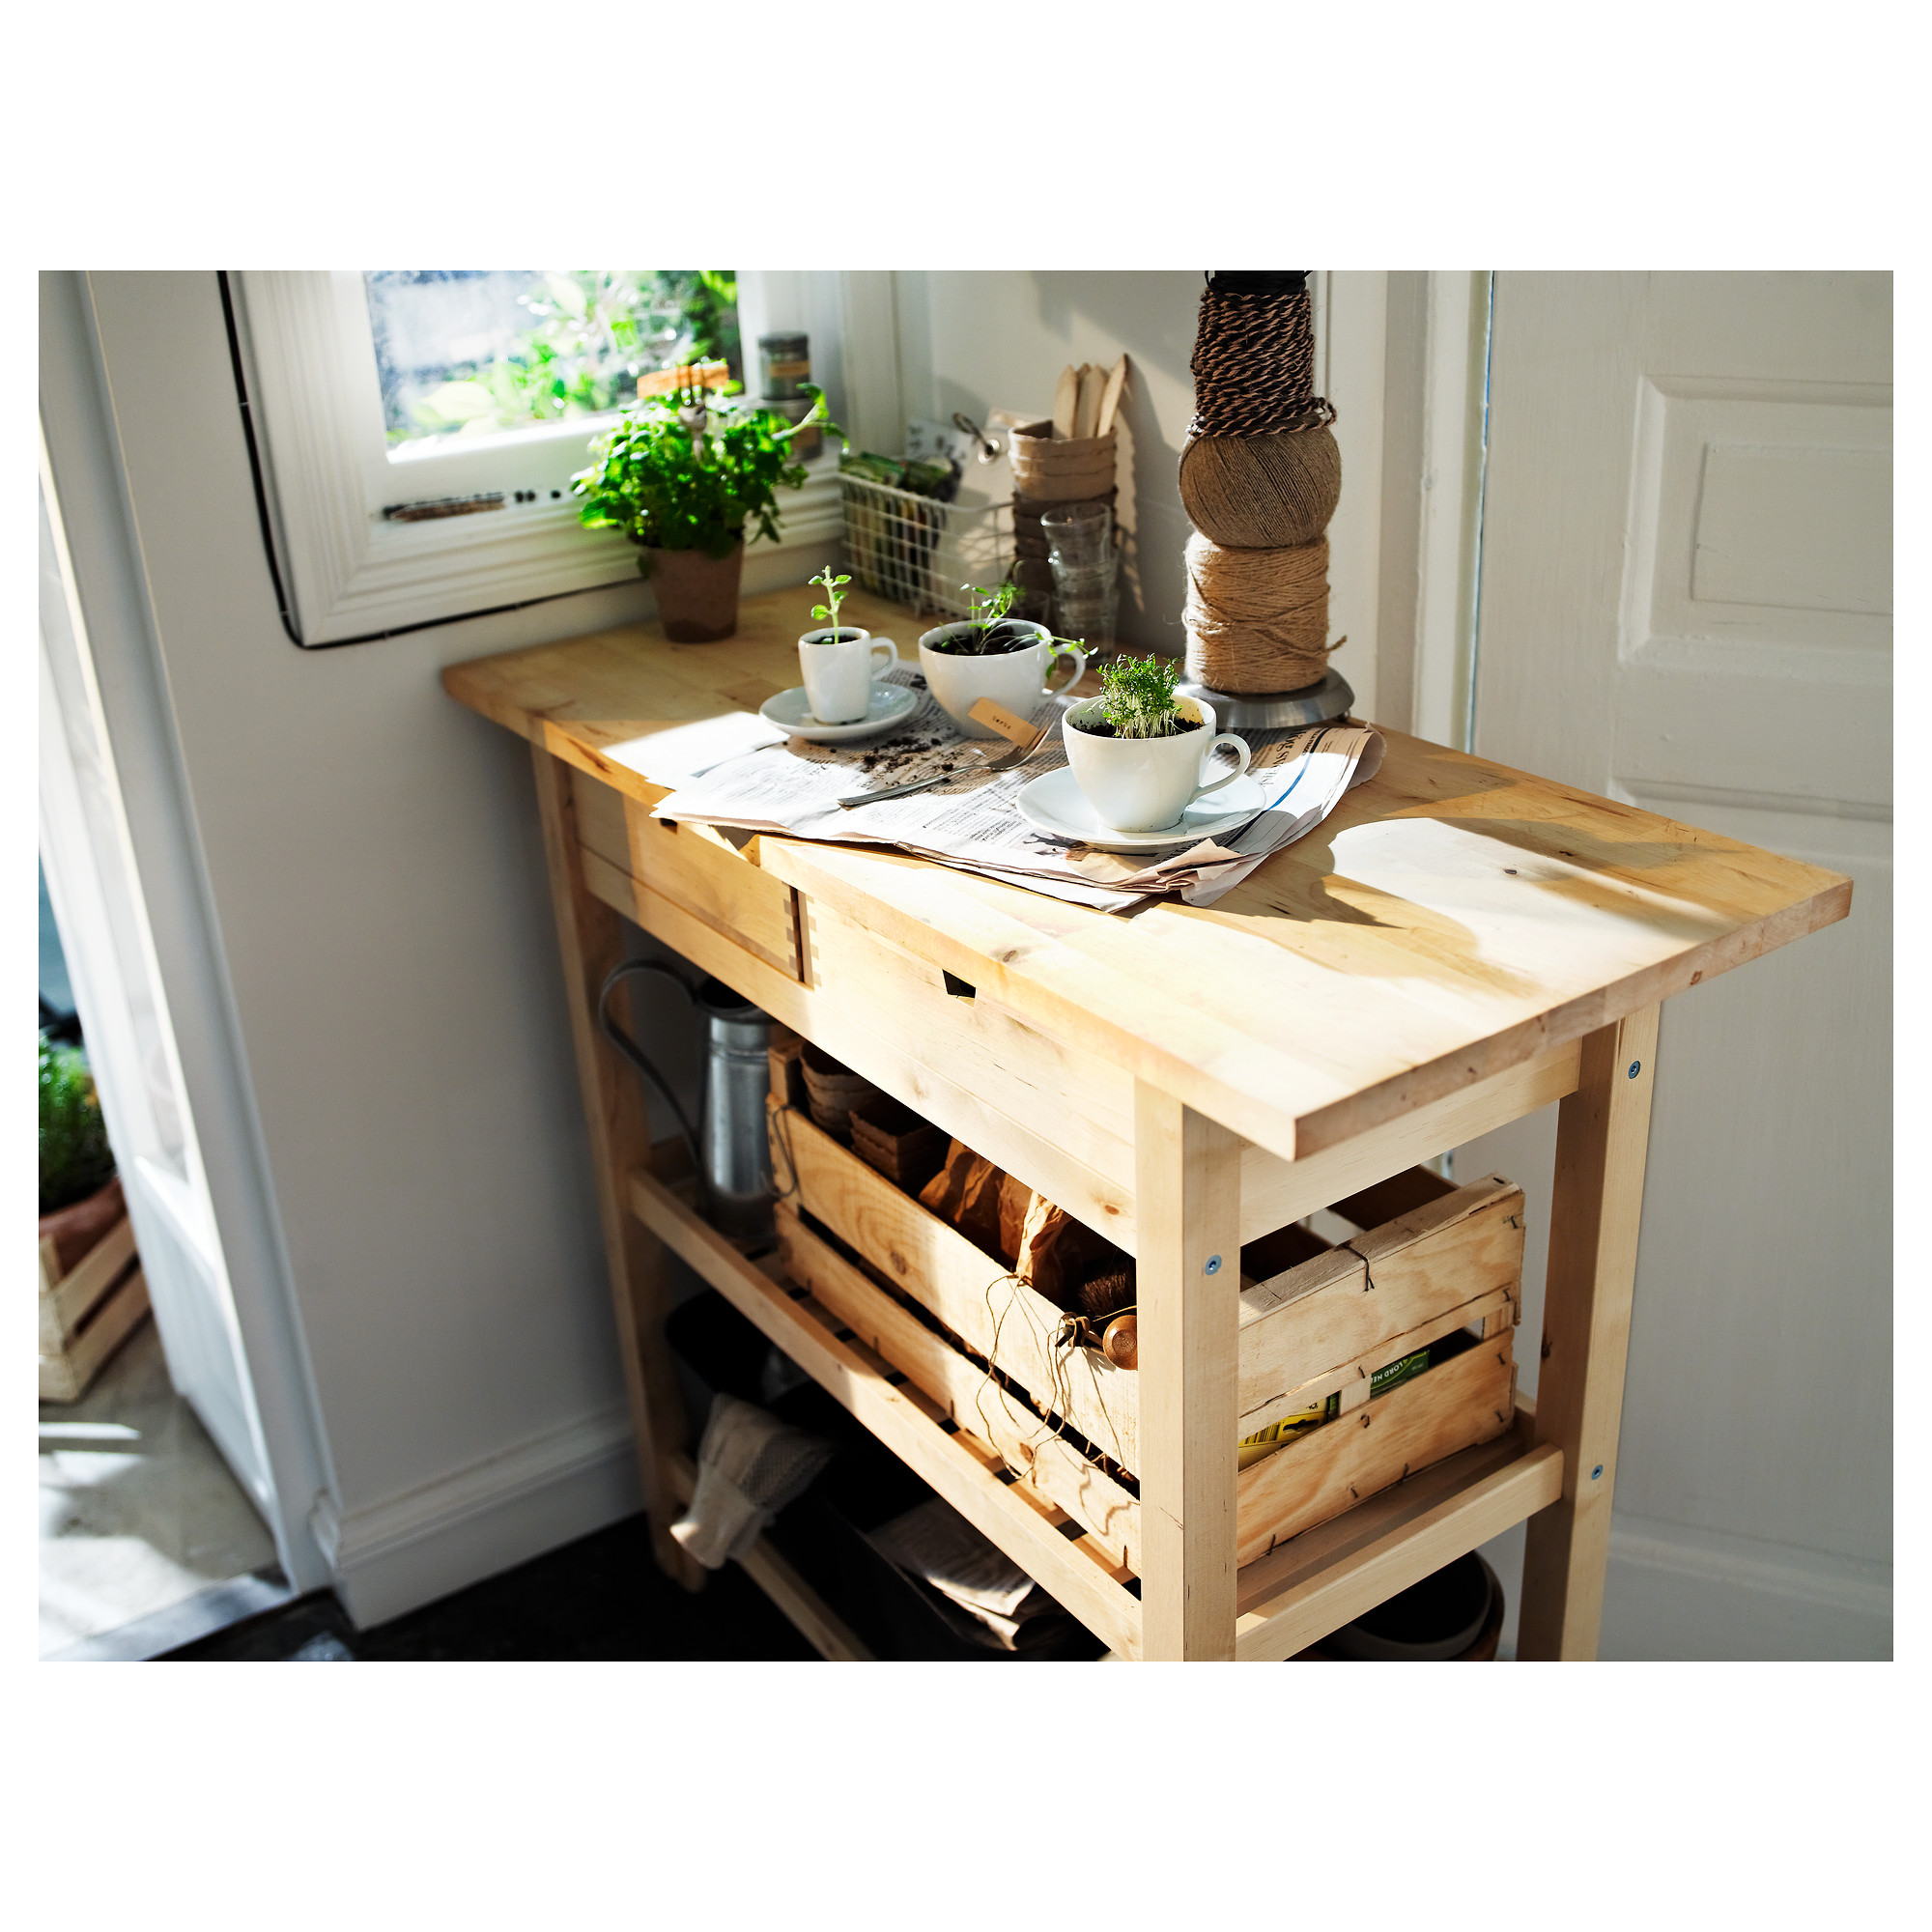 F–RH–JA Kitchen cart IKEA